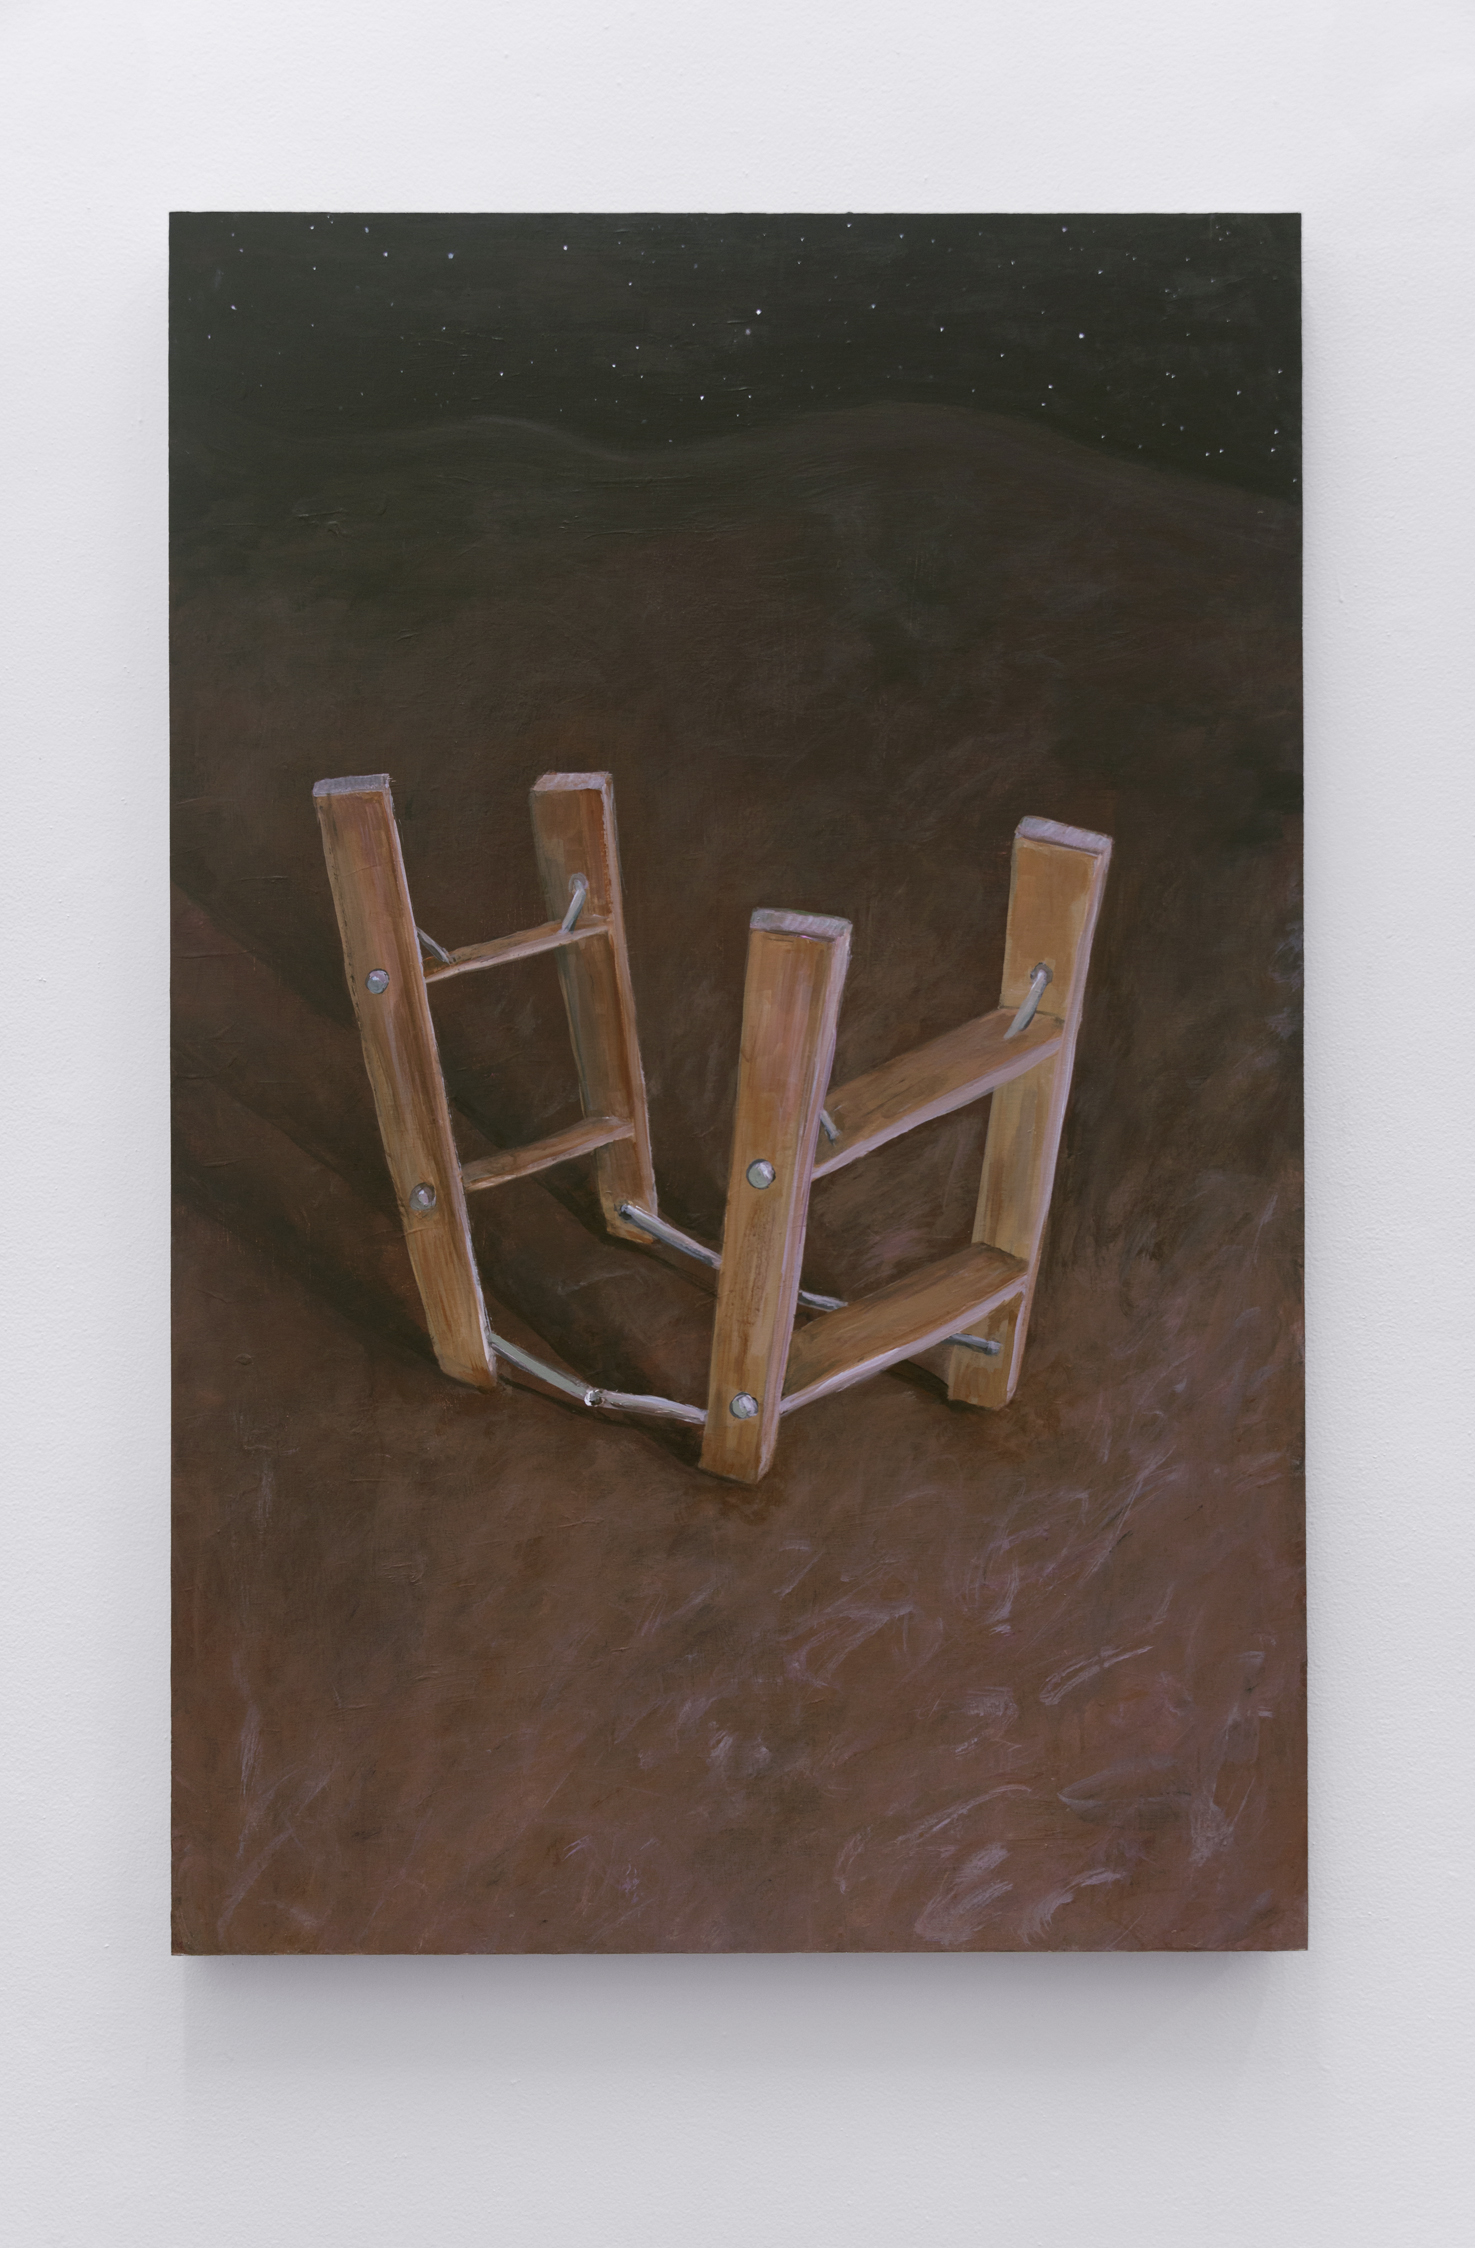 Ladder,  Acrylic and flashe on cradled birch panel 48 x 31.5 in, 2019